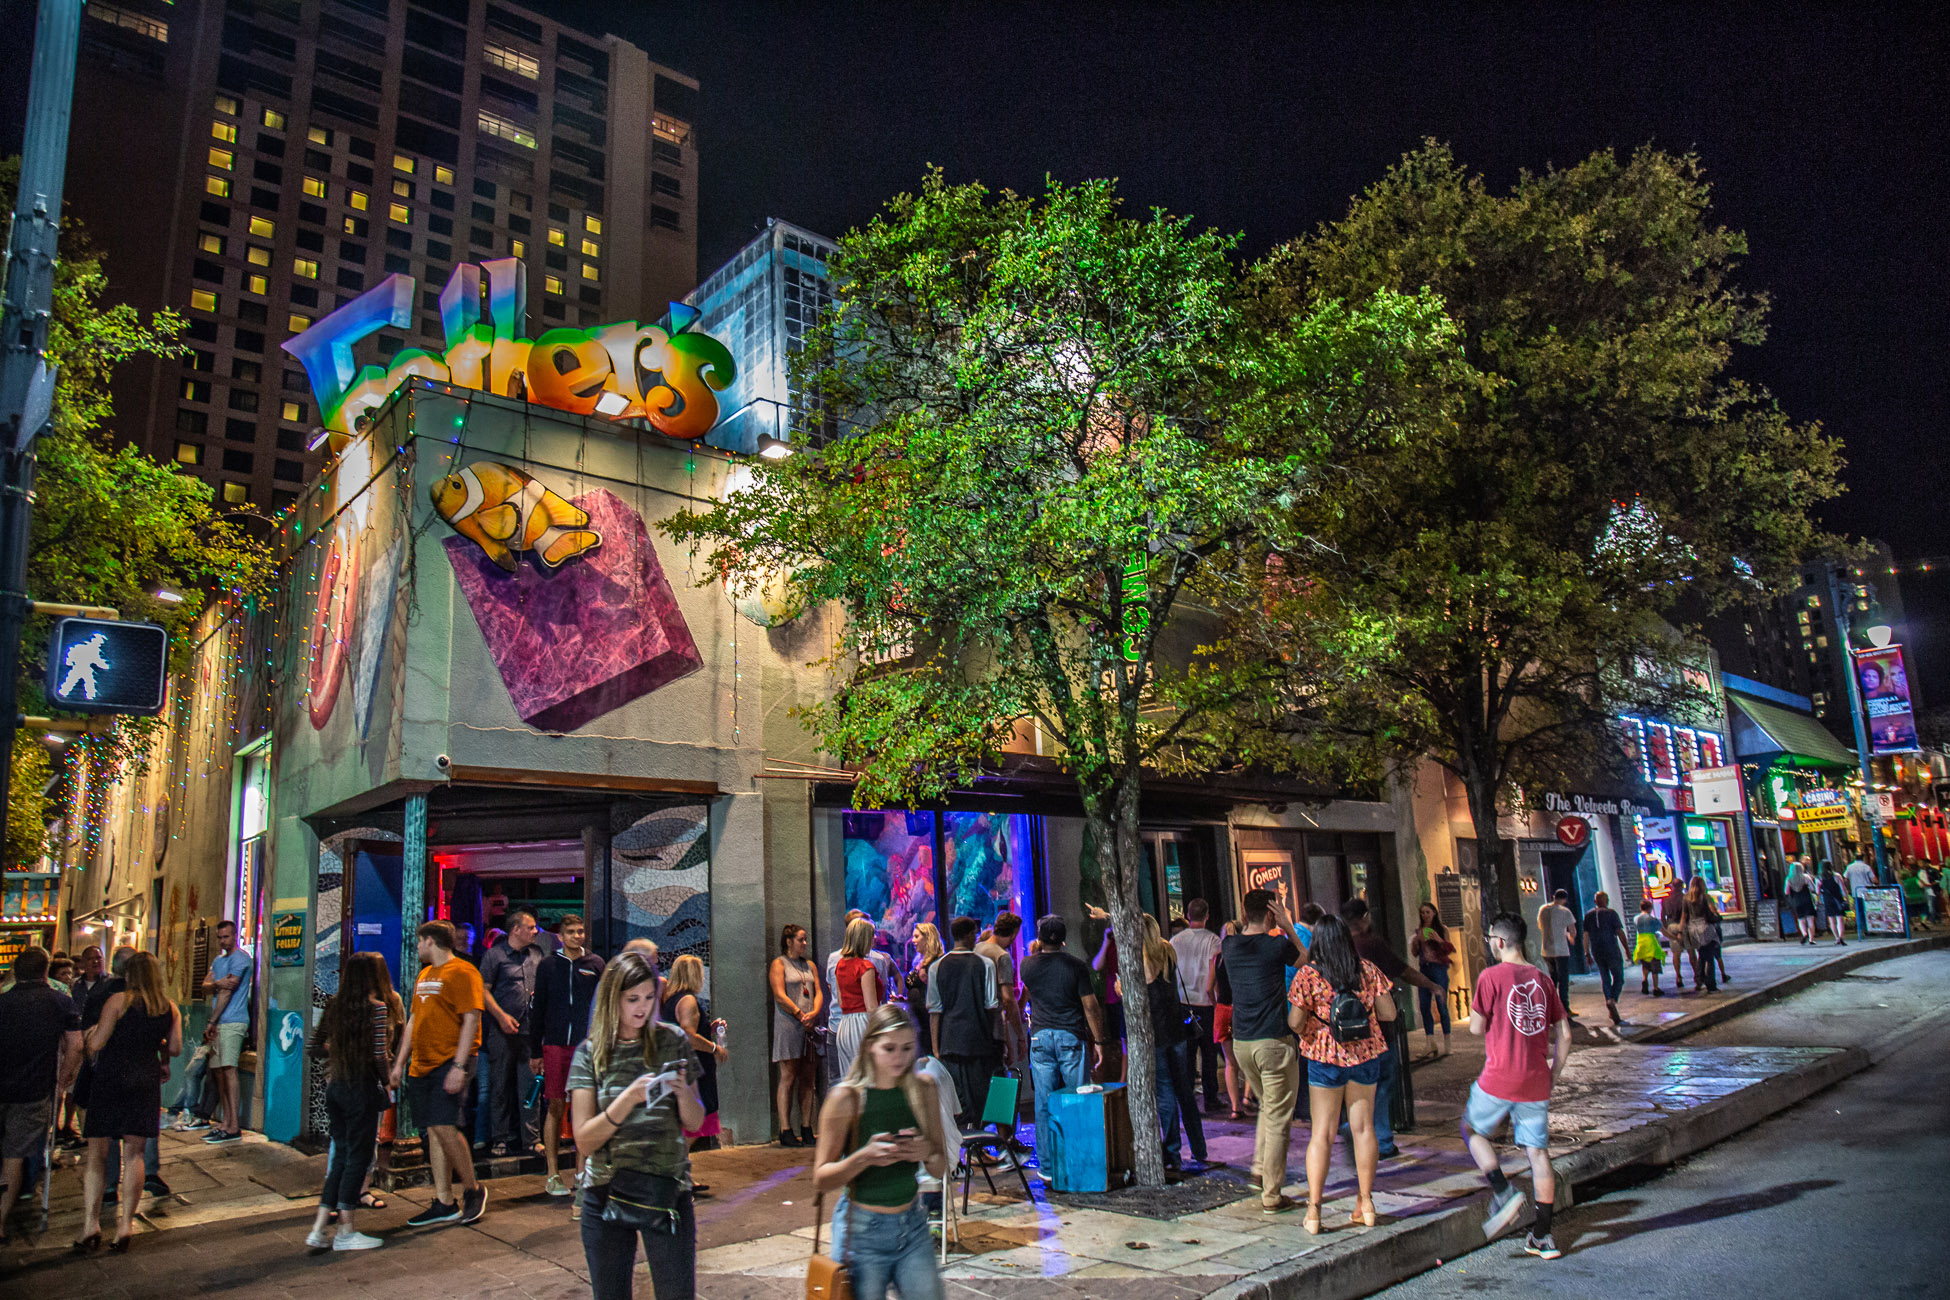 Patrons spill out after a show at the legendary Esther's Follies on 6th Street Austin, TX.  Photo: Will Taylor